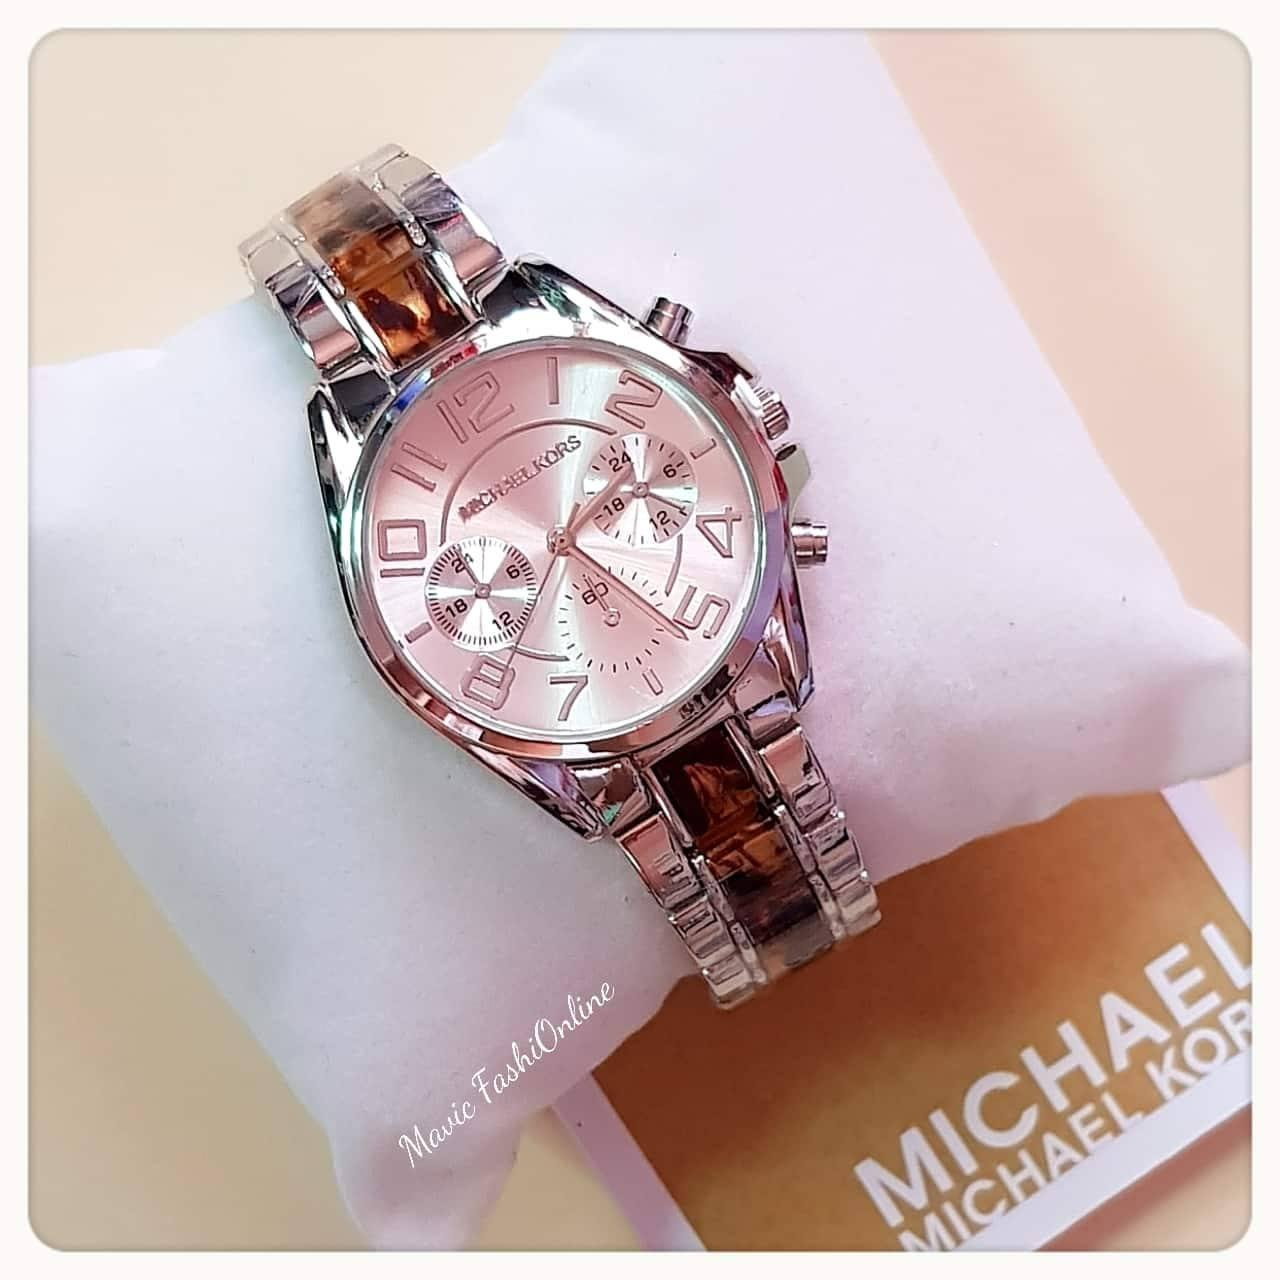 Michael Kors Philippines Watches For Women Sale Coach Rubber Watch Authentic New Arrival Stainles W Ceramic Designed